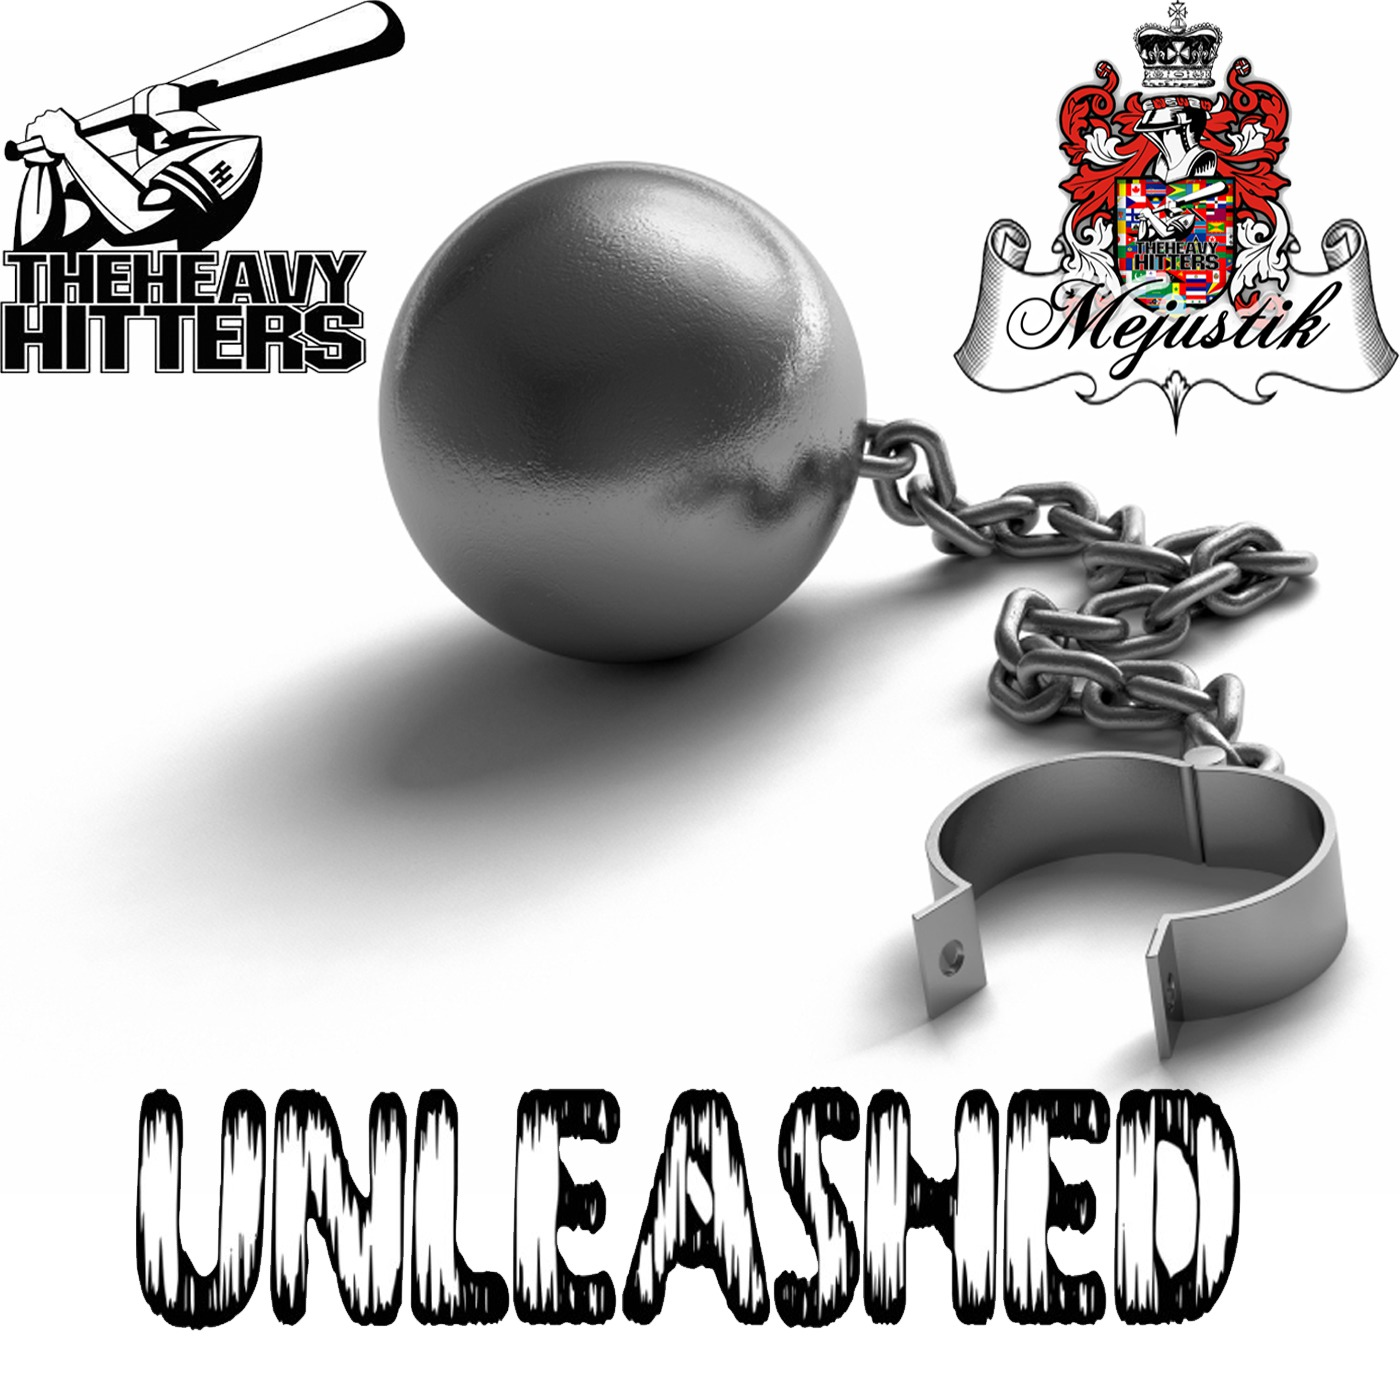 UNLEASHED MIXSHOW